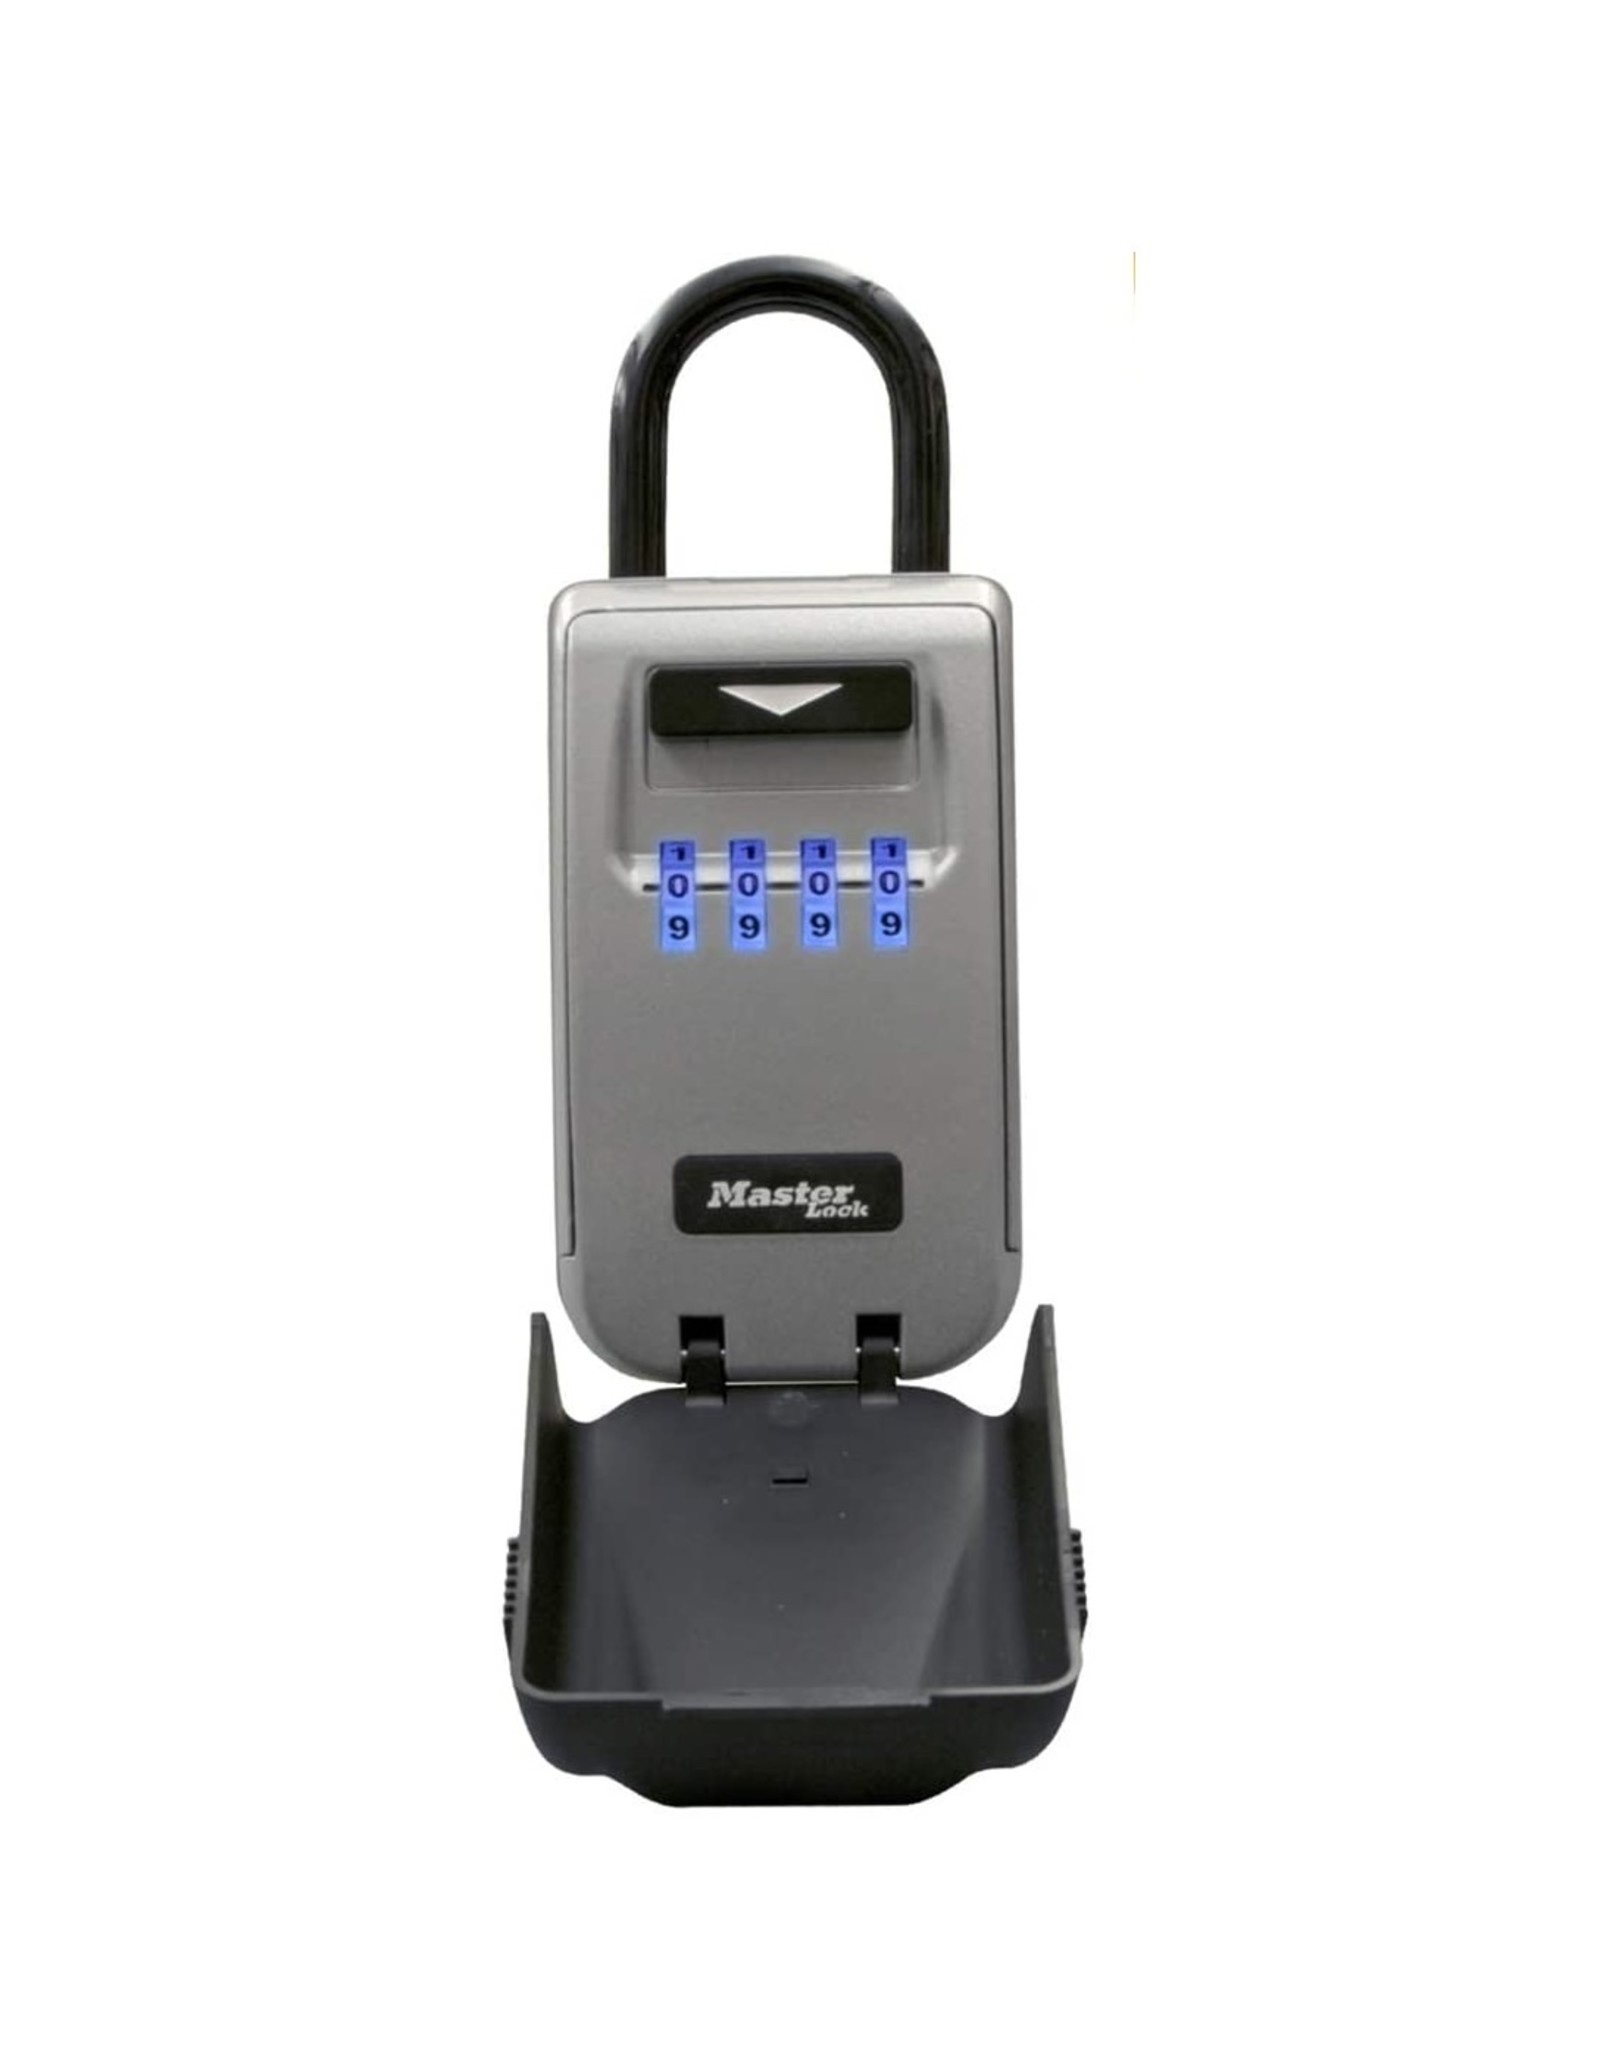 MasterLock MasterLock - Key safe - With illuminated keys - 5424EURD